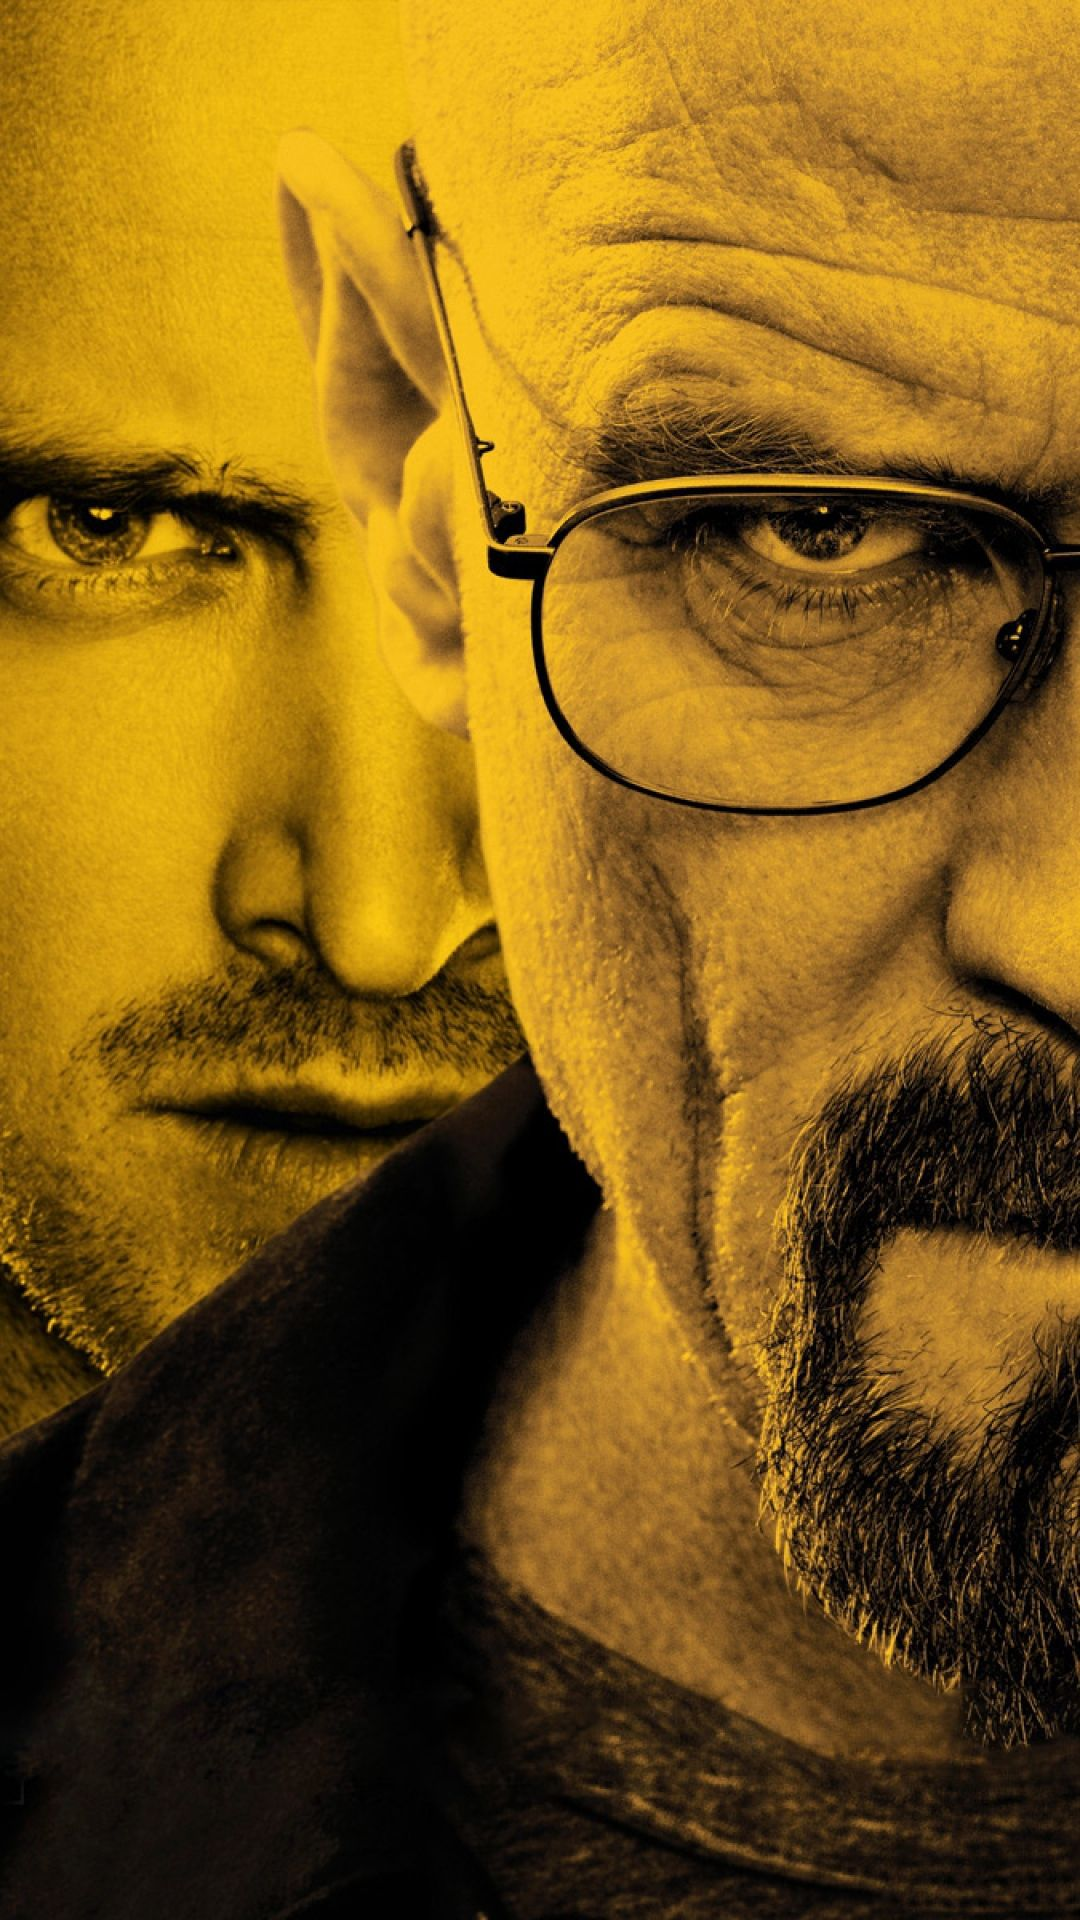 Breaking Bad Wallpapers Is 4k Wallpaper Are Very Cool Wallpaper Click To Download Breaking Bad Breaking Bad Tv Series Breaking Bad Seasons Breaking Bad Poster